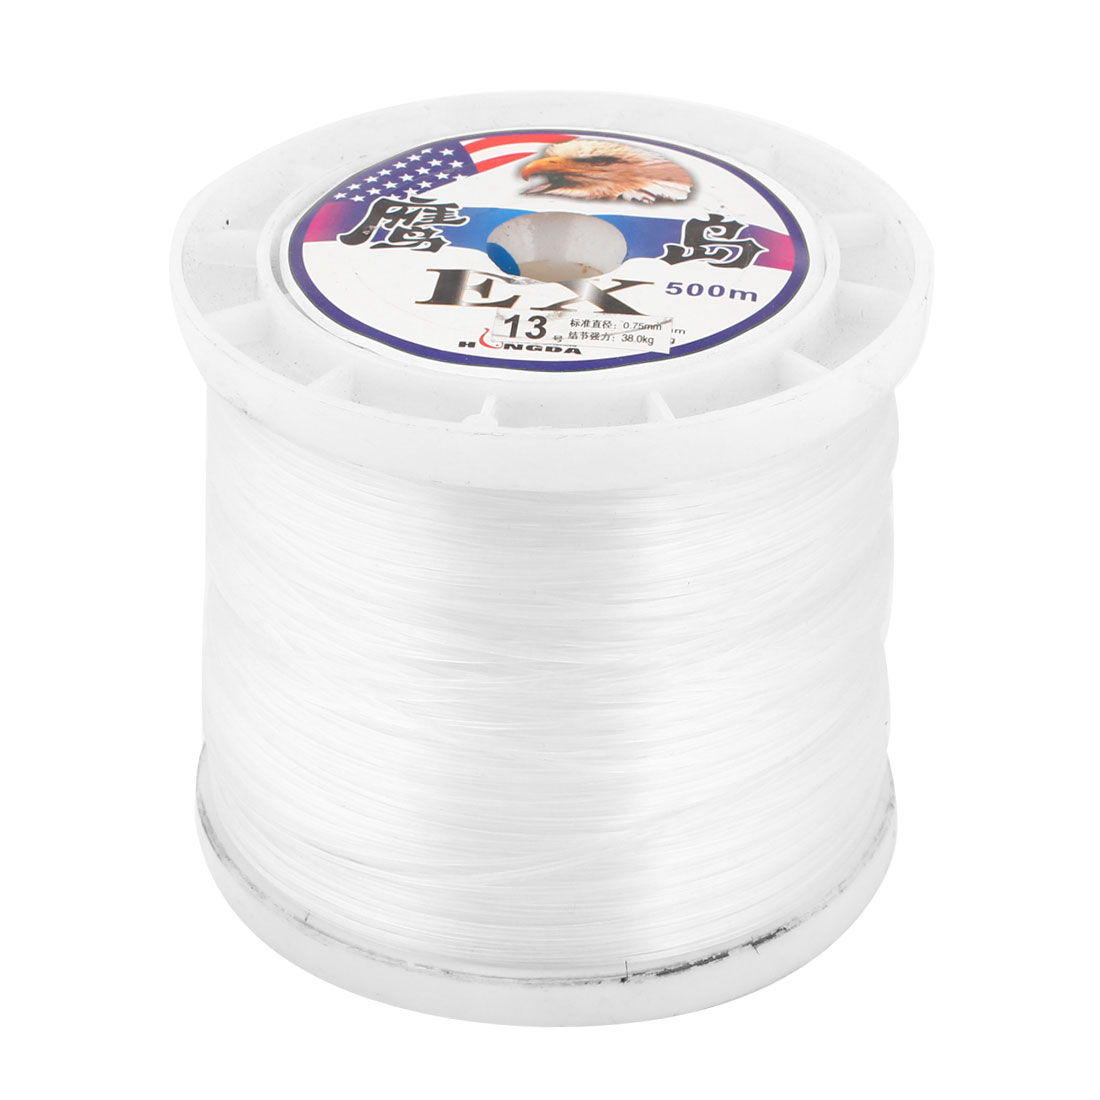 0.75mm Diameter 500M Thread 38Kg 83.8 lb Fishing Line Spool White